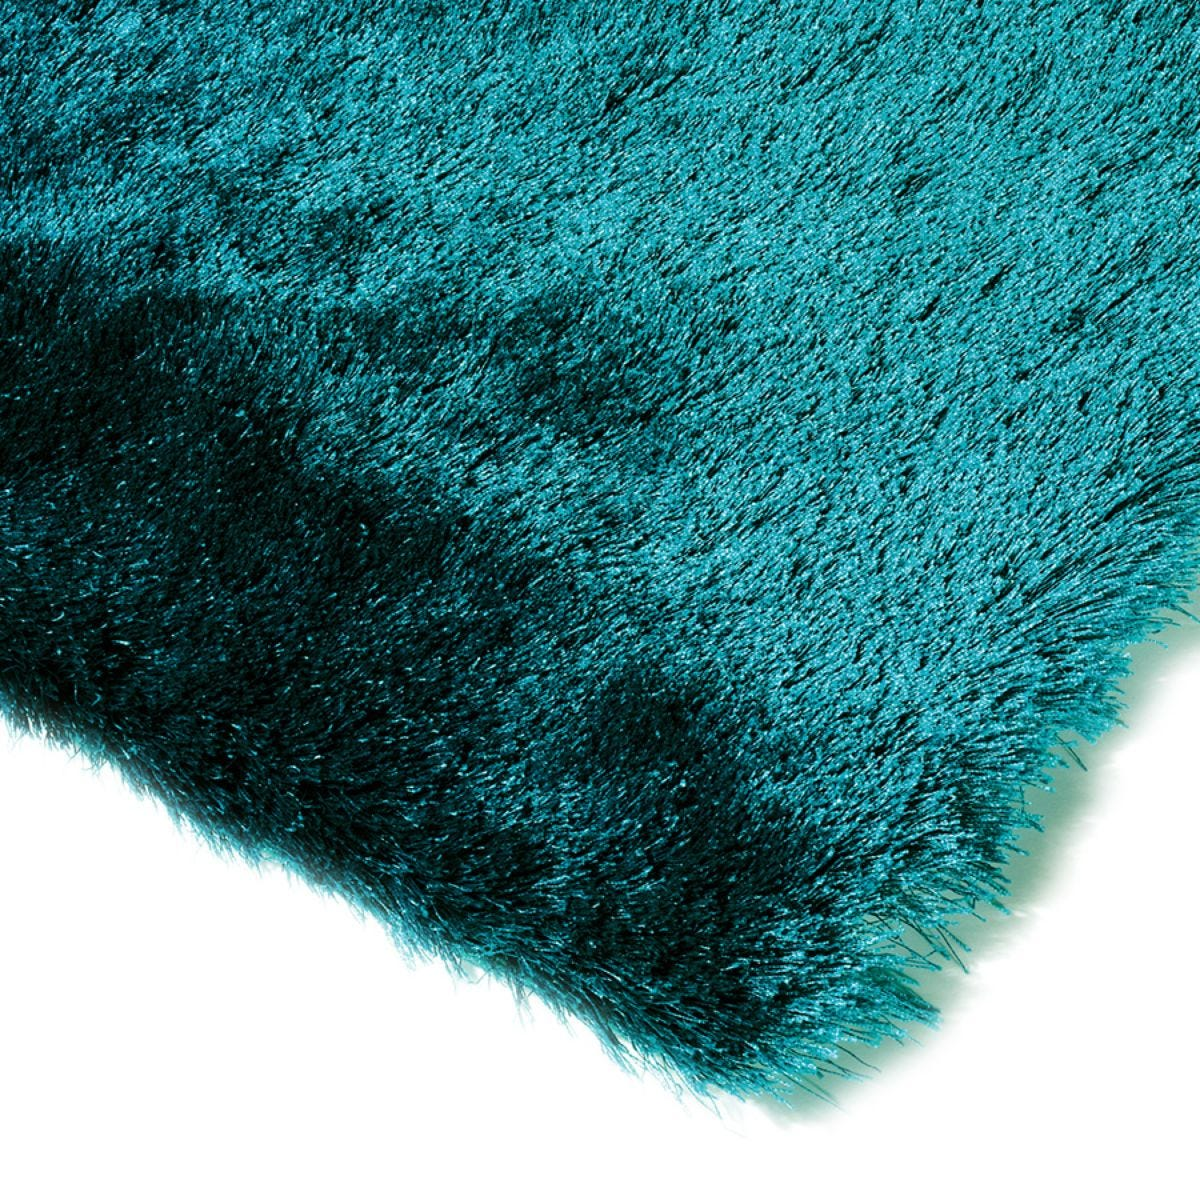 Asiatic Extra Small Whisper Rug - Dark Teal